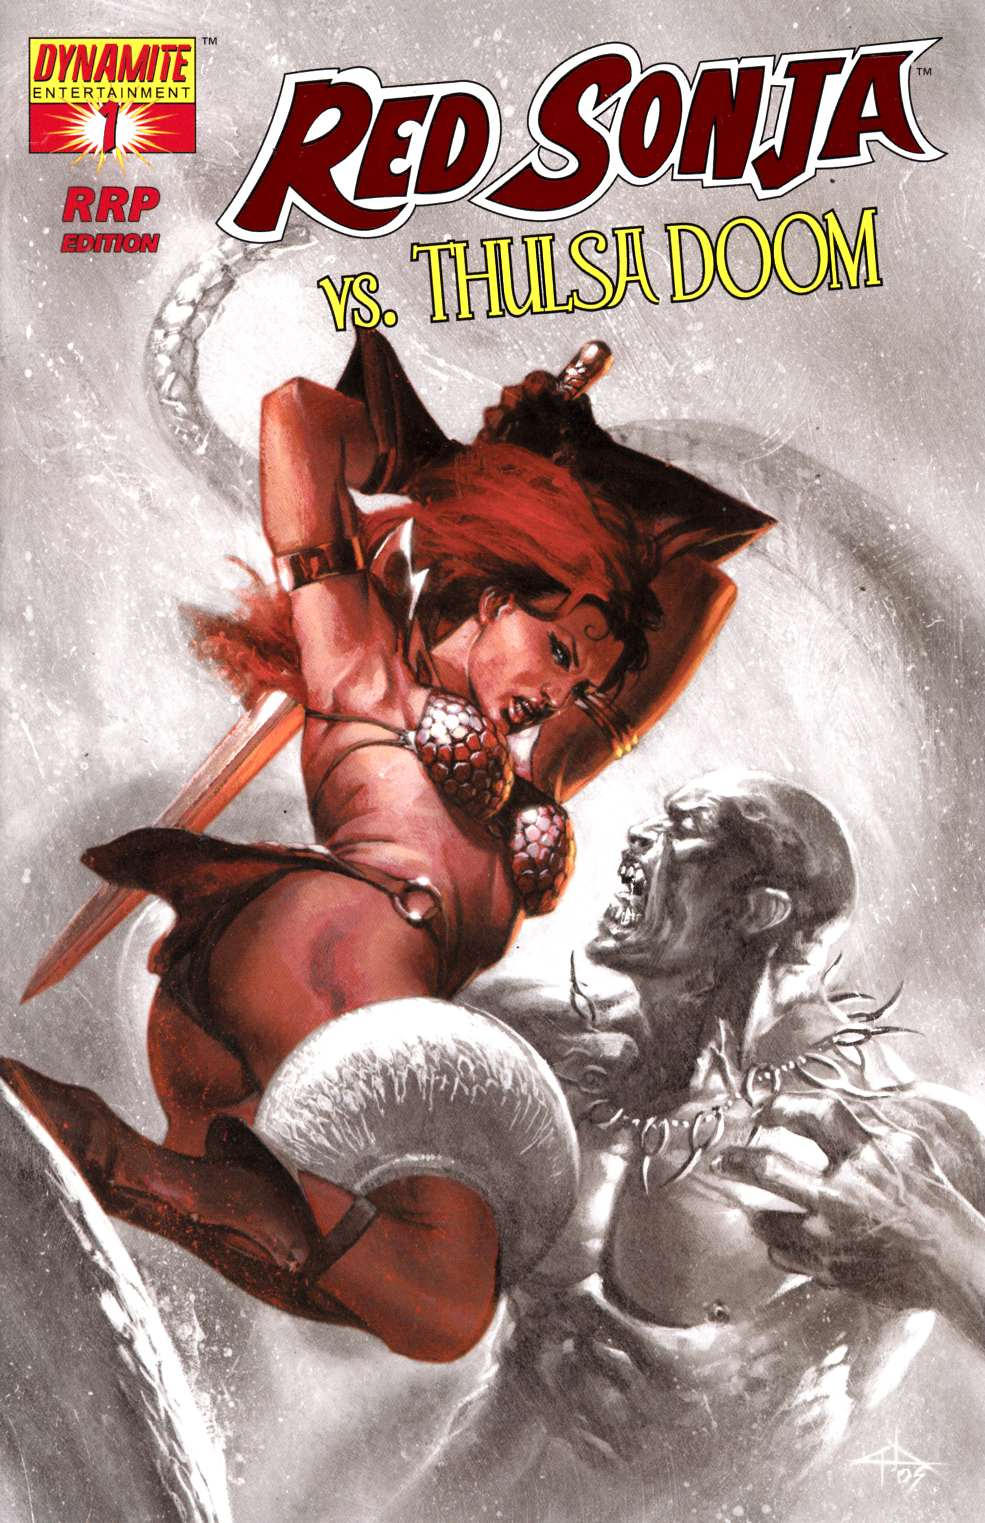 Red Sonja vs Thulsa Doom #1 Dell'Otto RRP Variant Cover Near Mint (9.4) [Dynamite Comic] LARGE